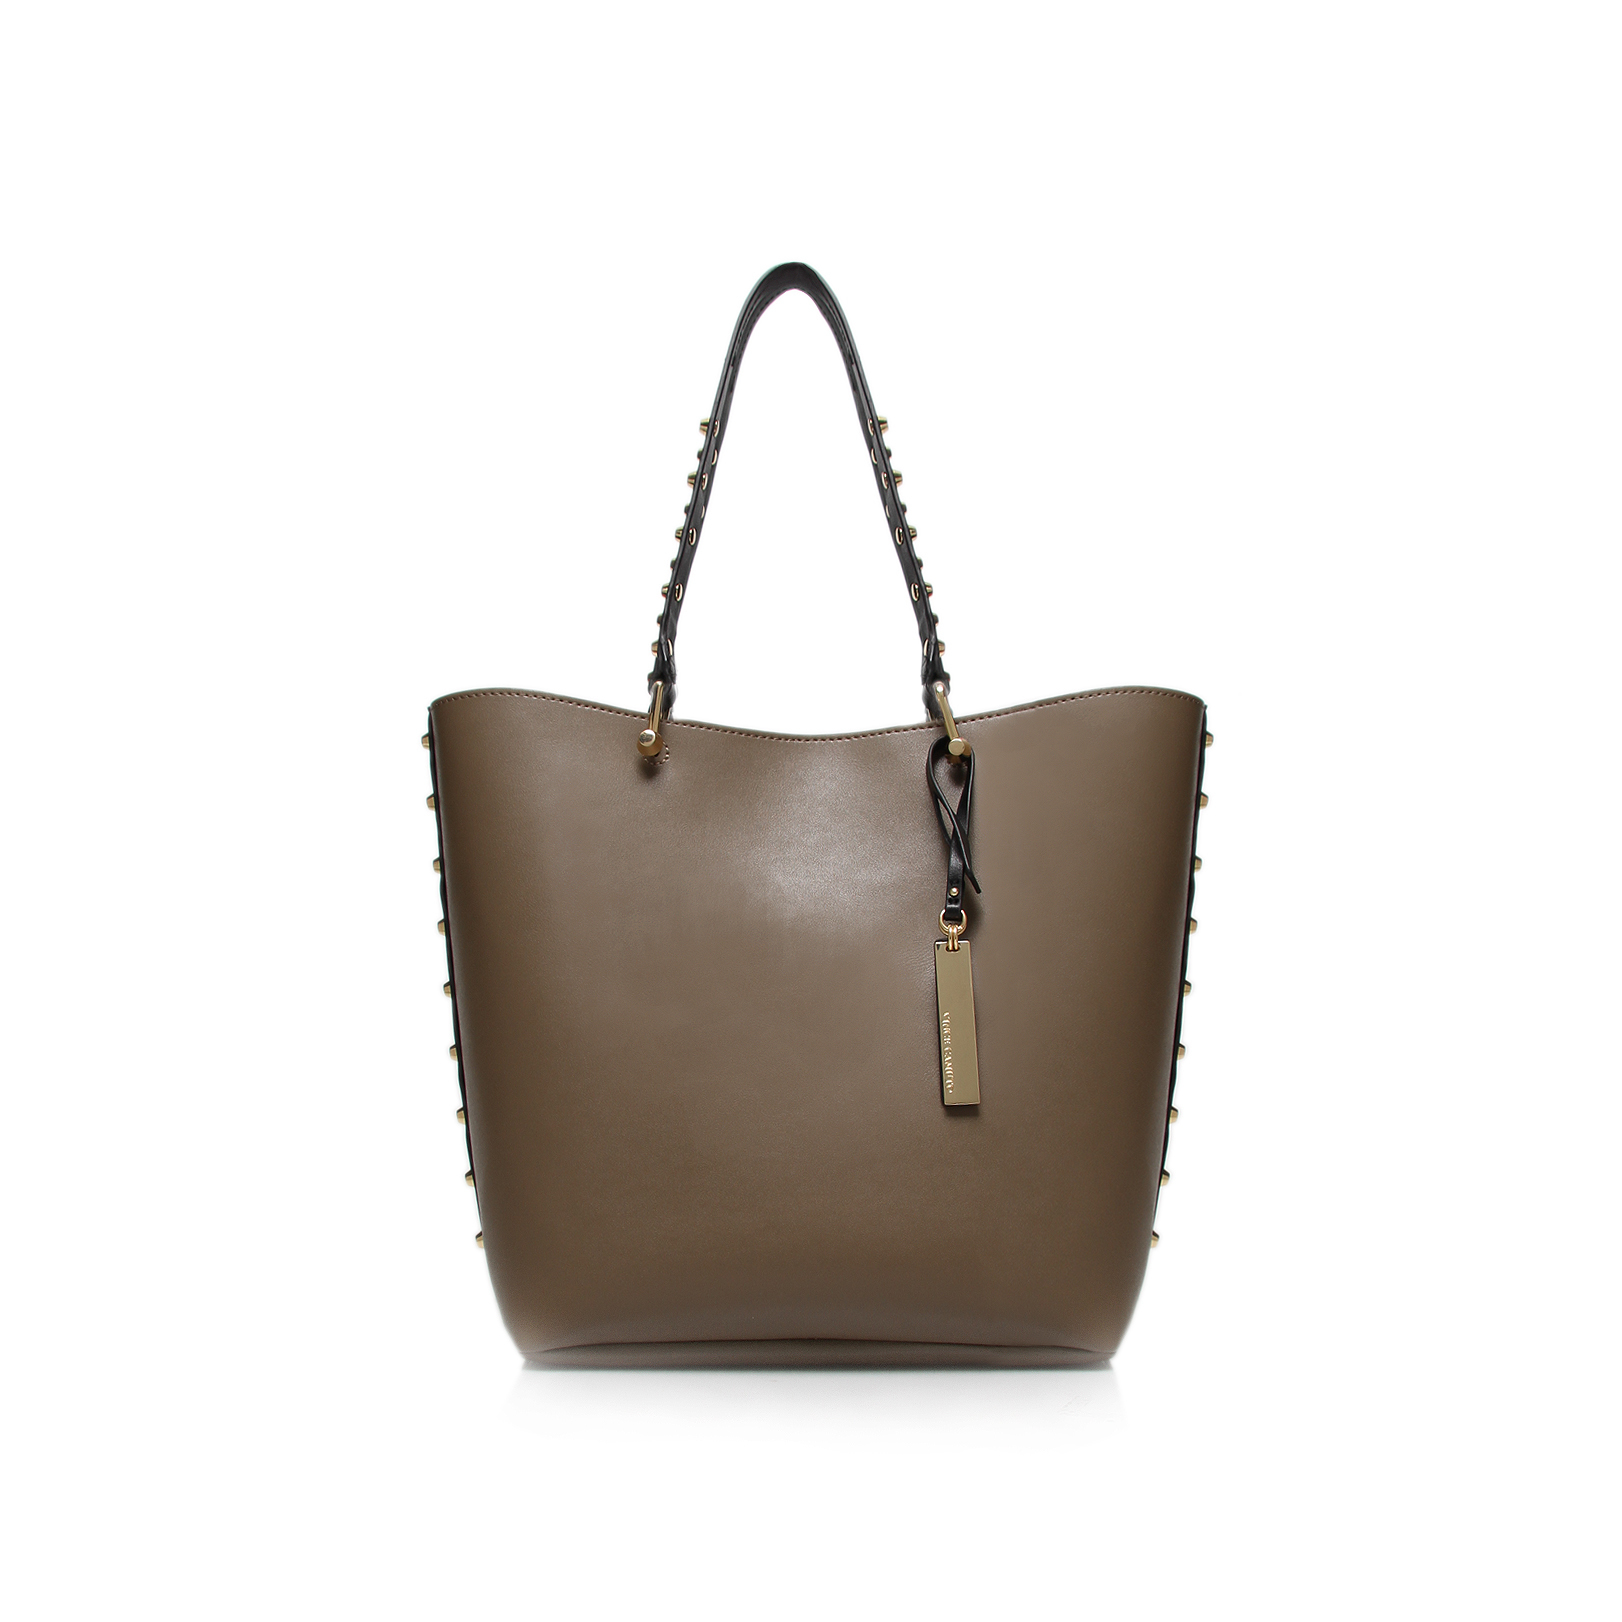 Vince Camuto Evie Small Tote Taupe Tote Bag By Vince Camuto